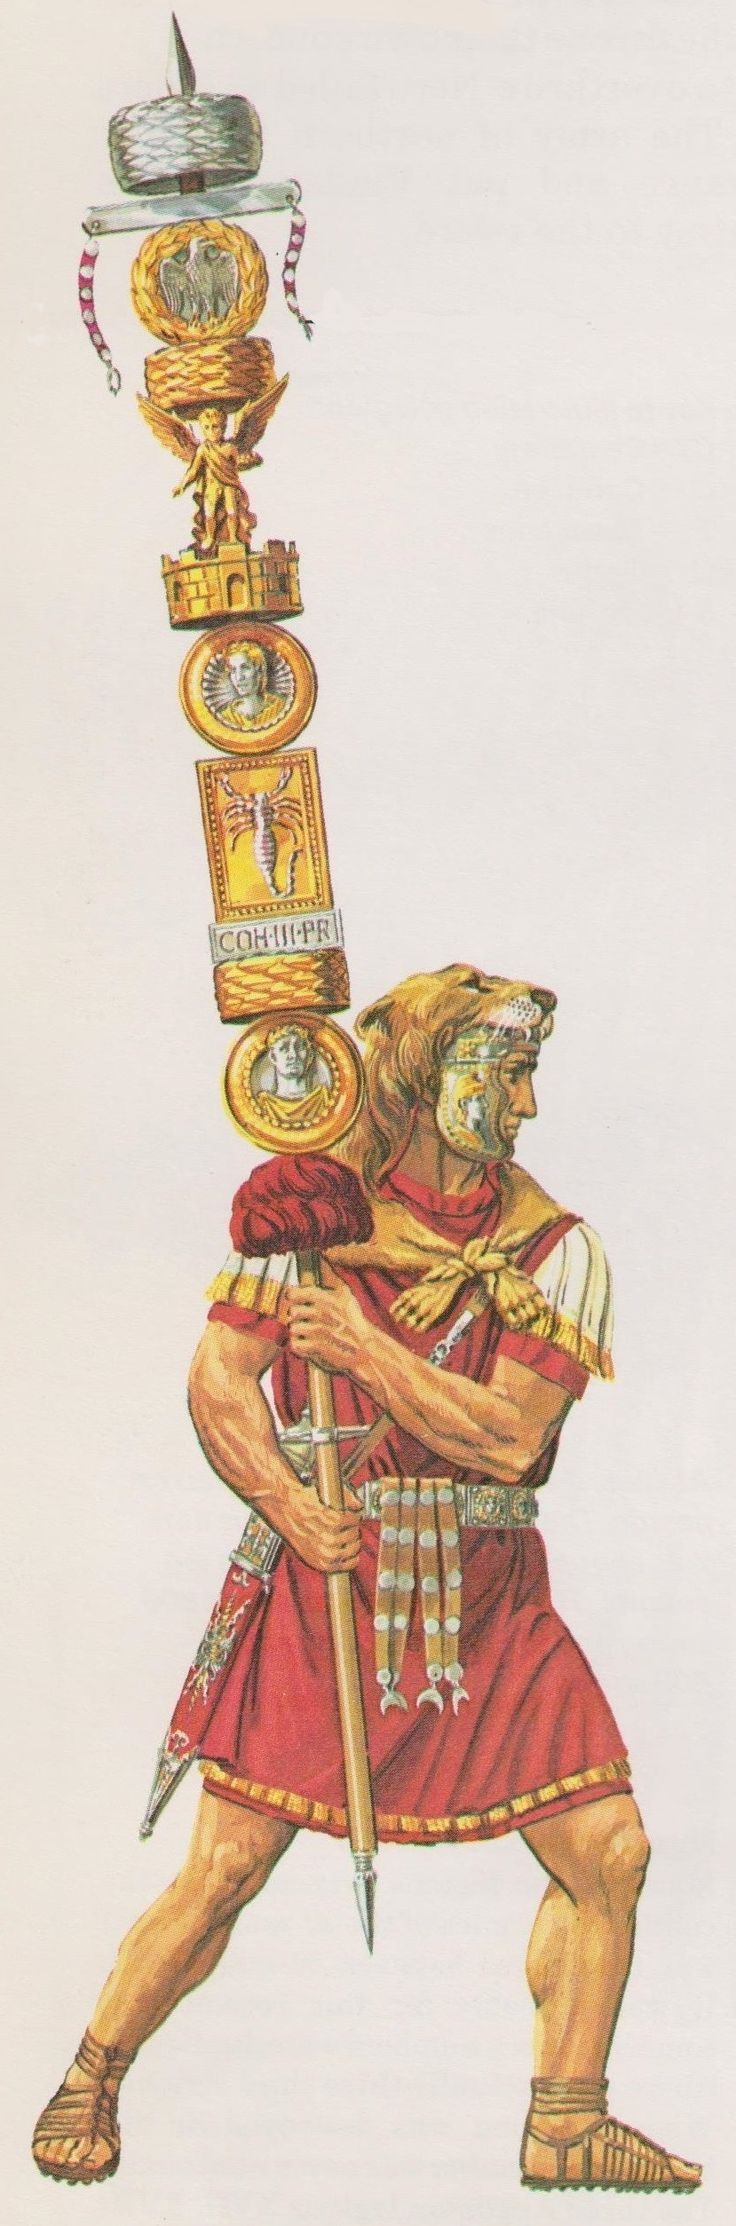 Roman Standard of the 3rd Praetorian Cohort with images of Nero and his wife by Peter Connolly (The Roman Army/Praetorian Guard/user: Aethon)